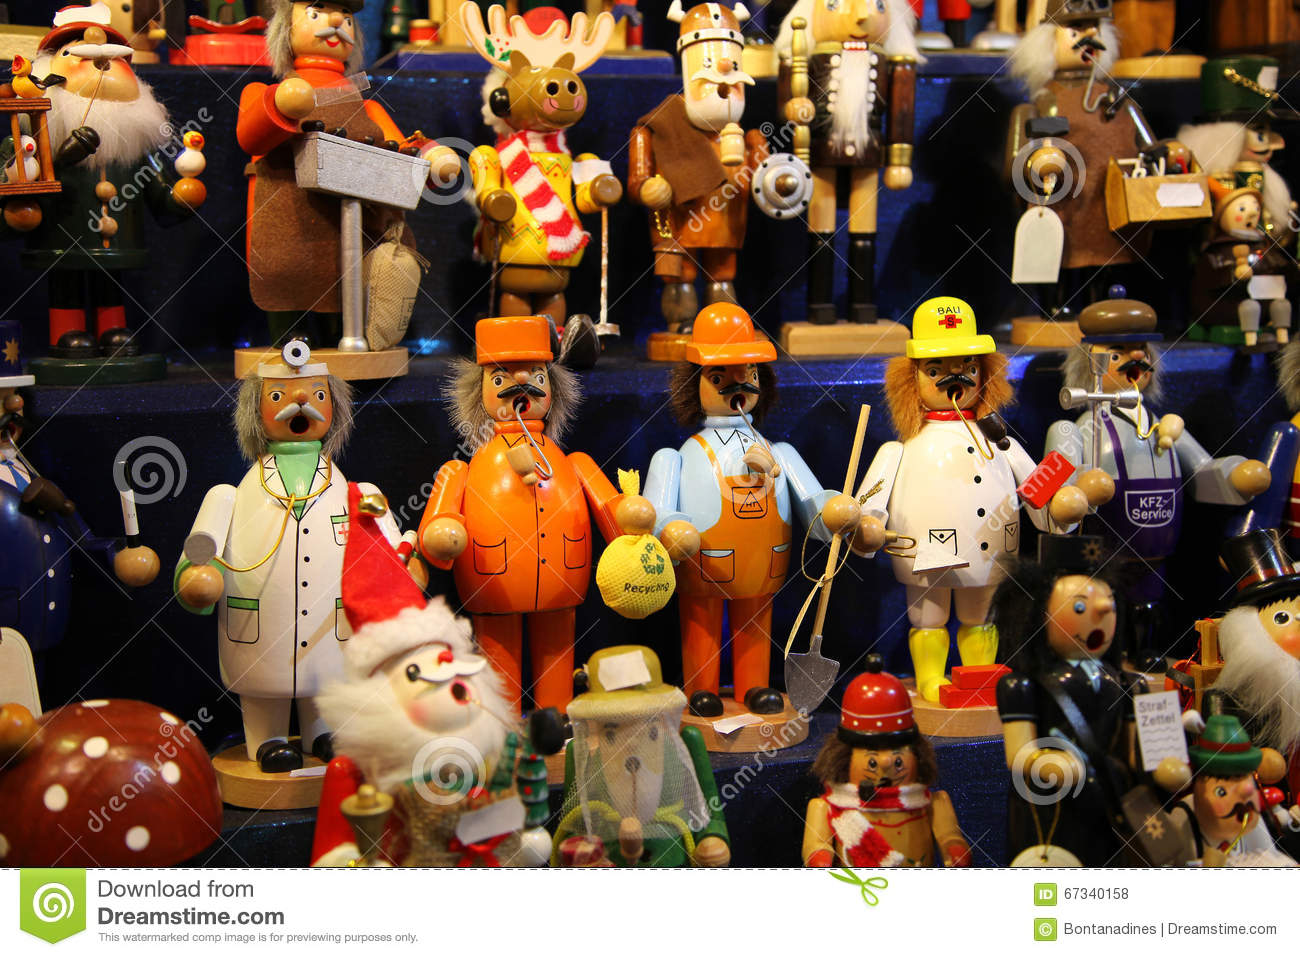 Traditional German wooden toys at the Fair